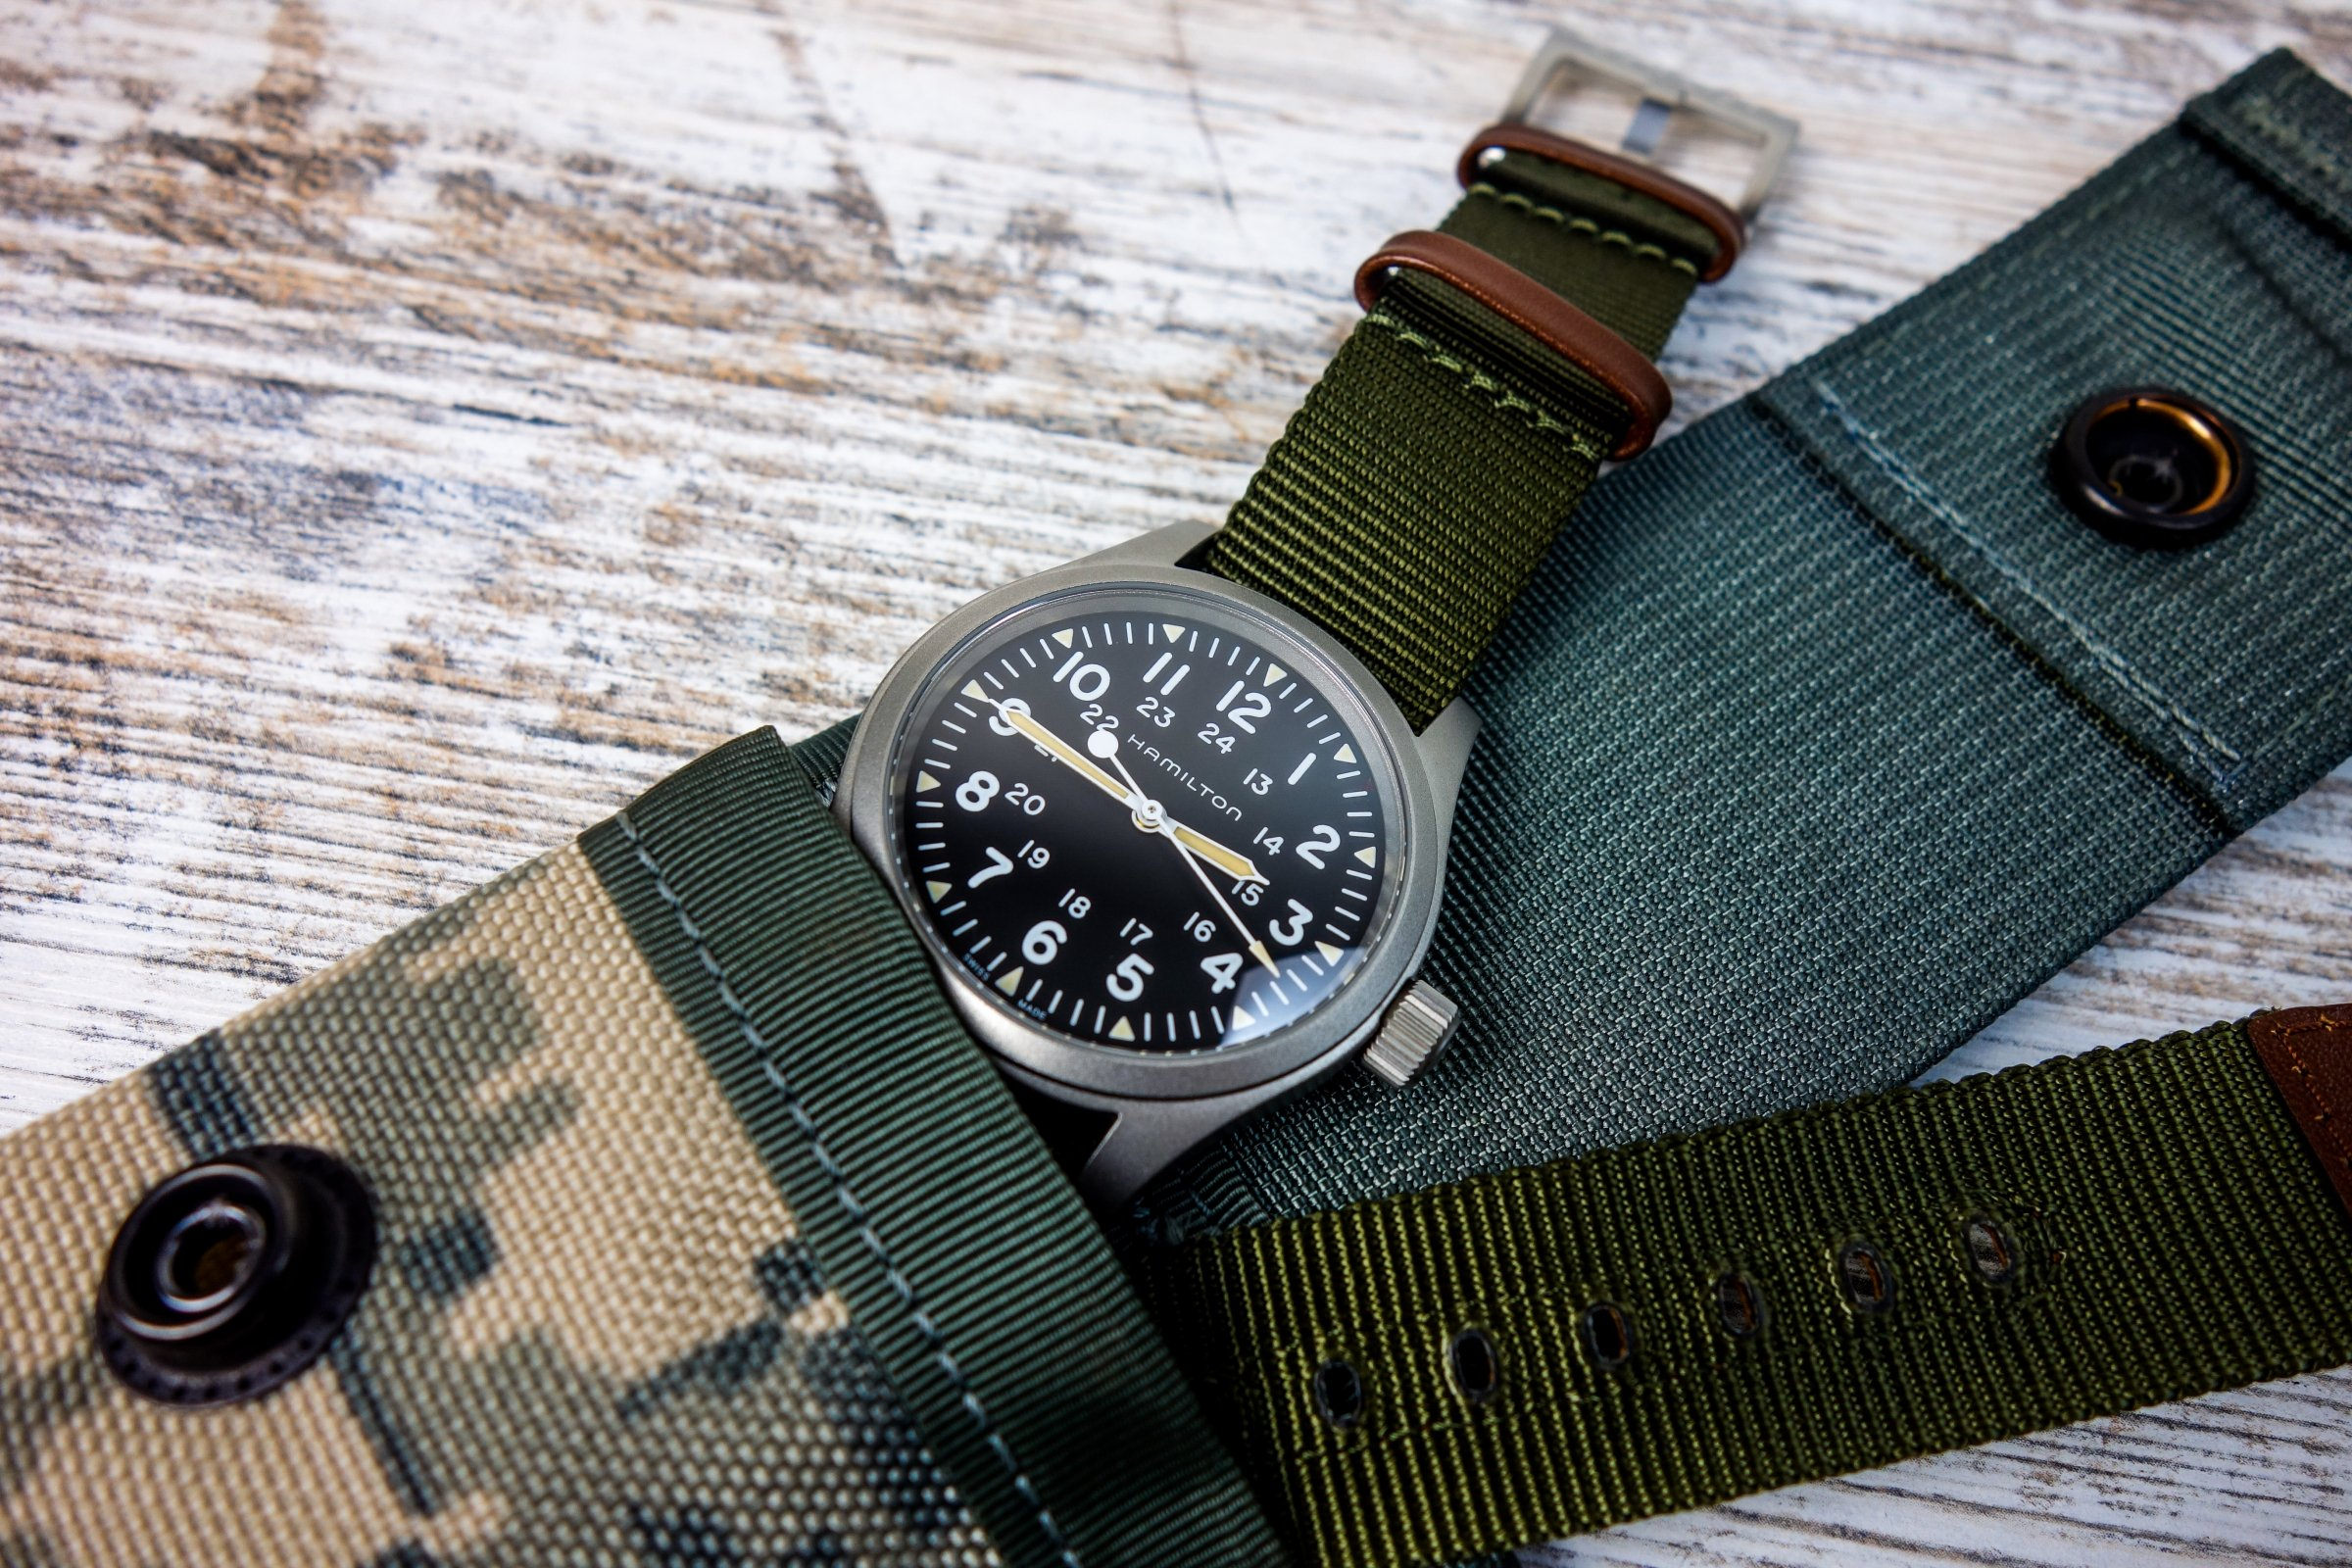 Hamilton Khaki Field Mechanical ETA 2801 Basel 18